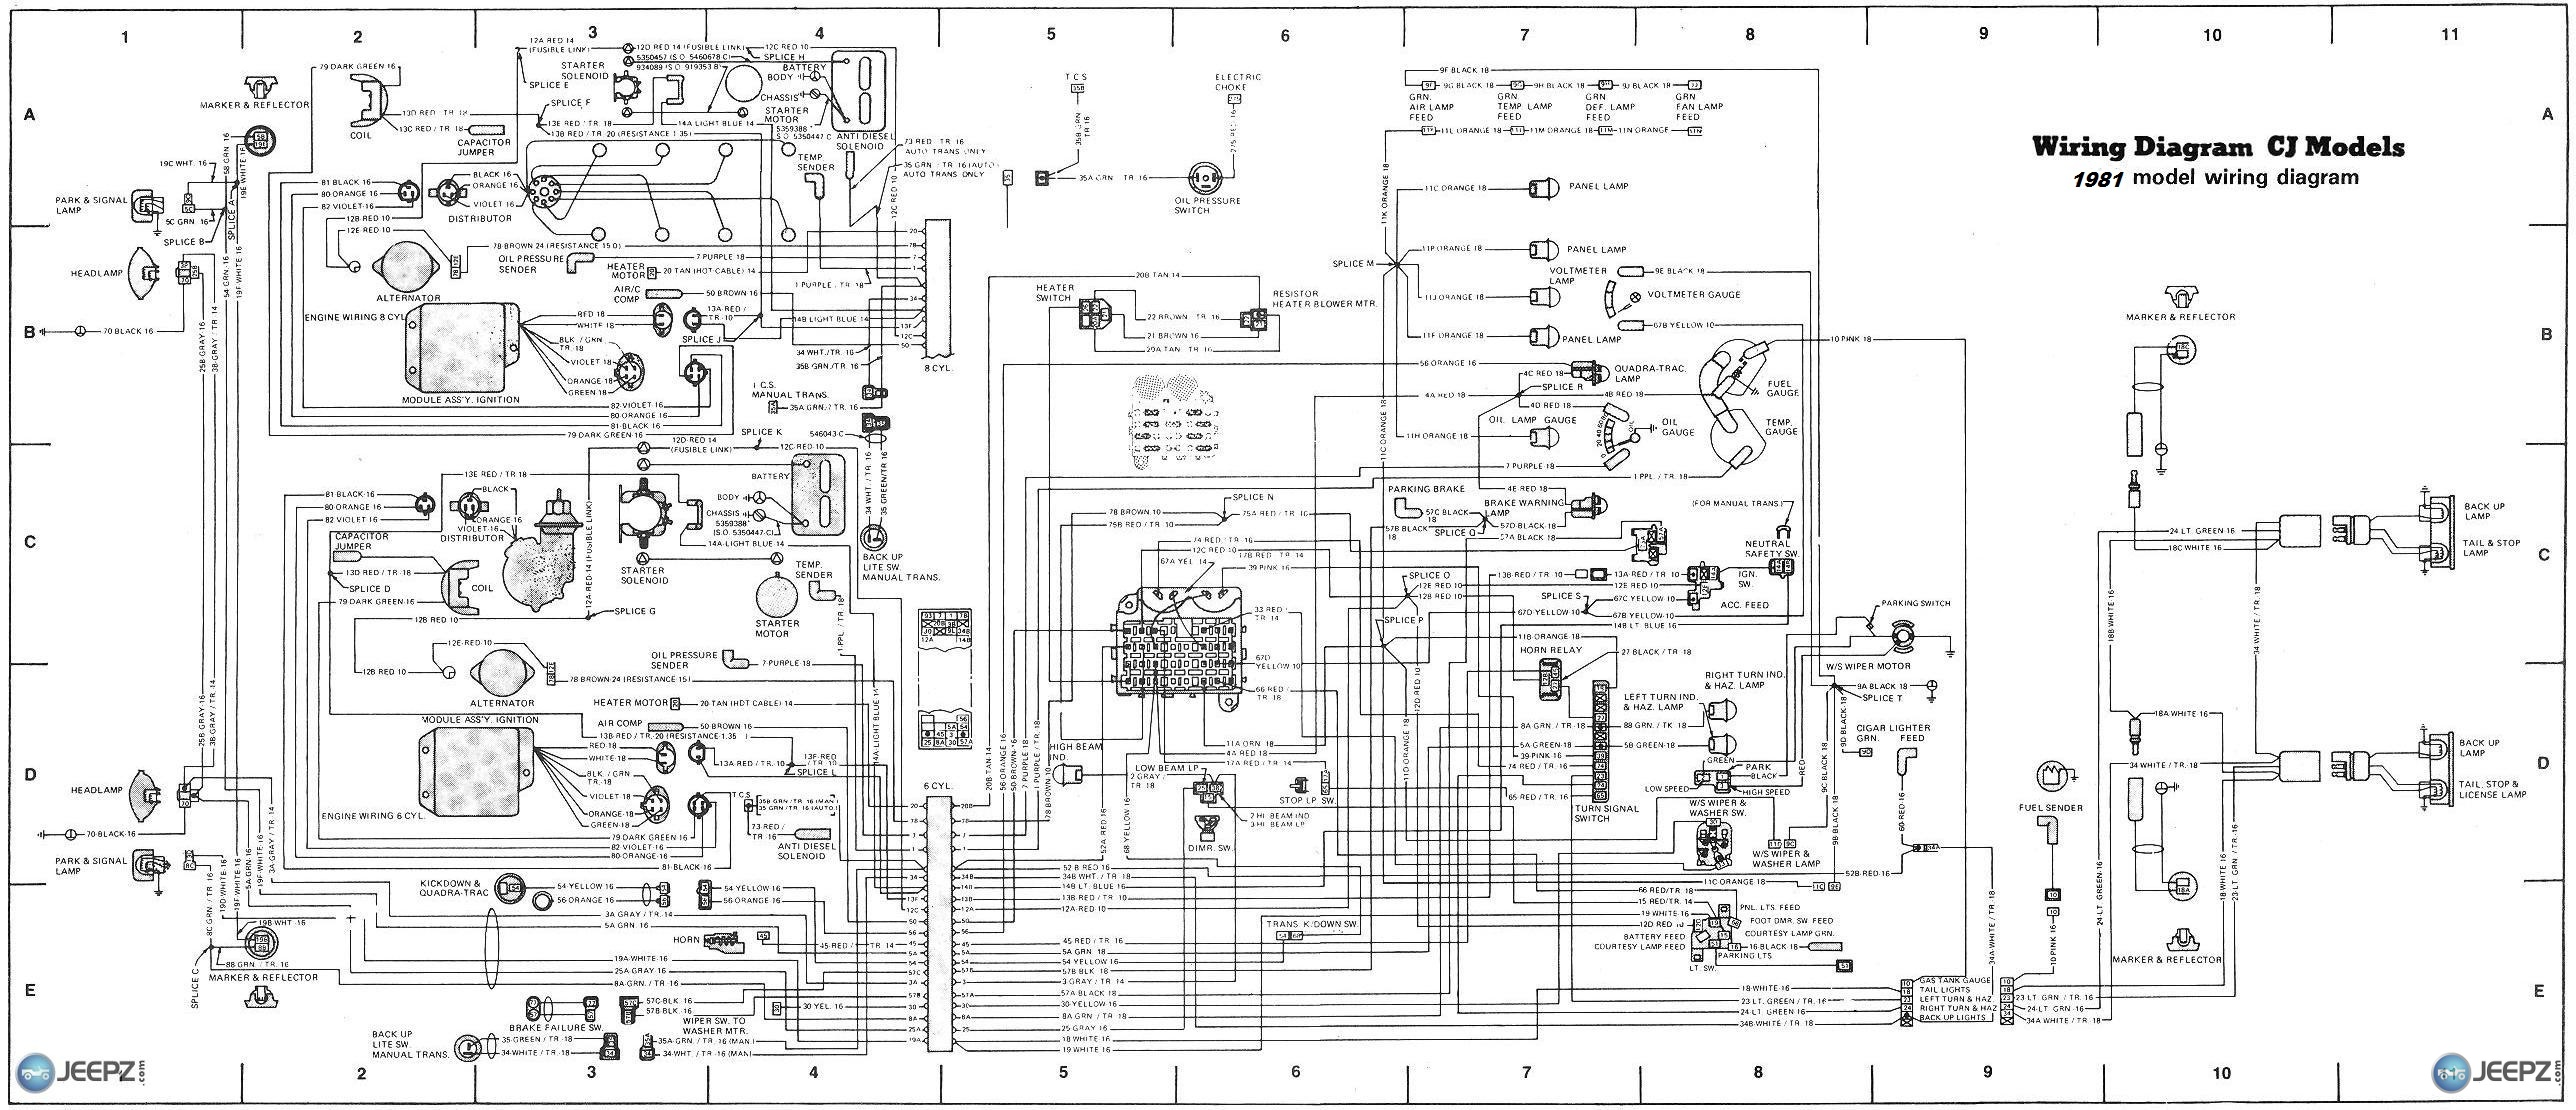 1963 willys truck wiring diagrams explained wiring diagram 1963 Chevy Truck Turn Signal Wiring Diagram 1963 cj5 wiring schematic wiring diagram mack truck wiring diagram 1963 willys cj5 wiring diagram wiring